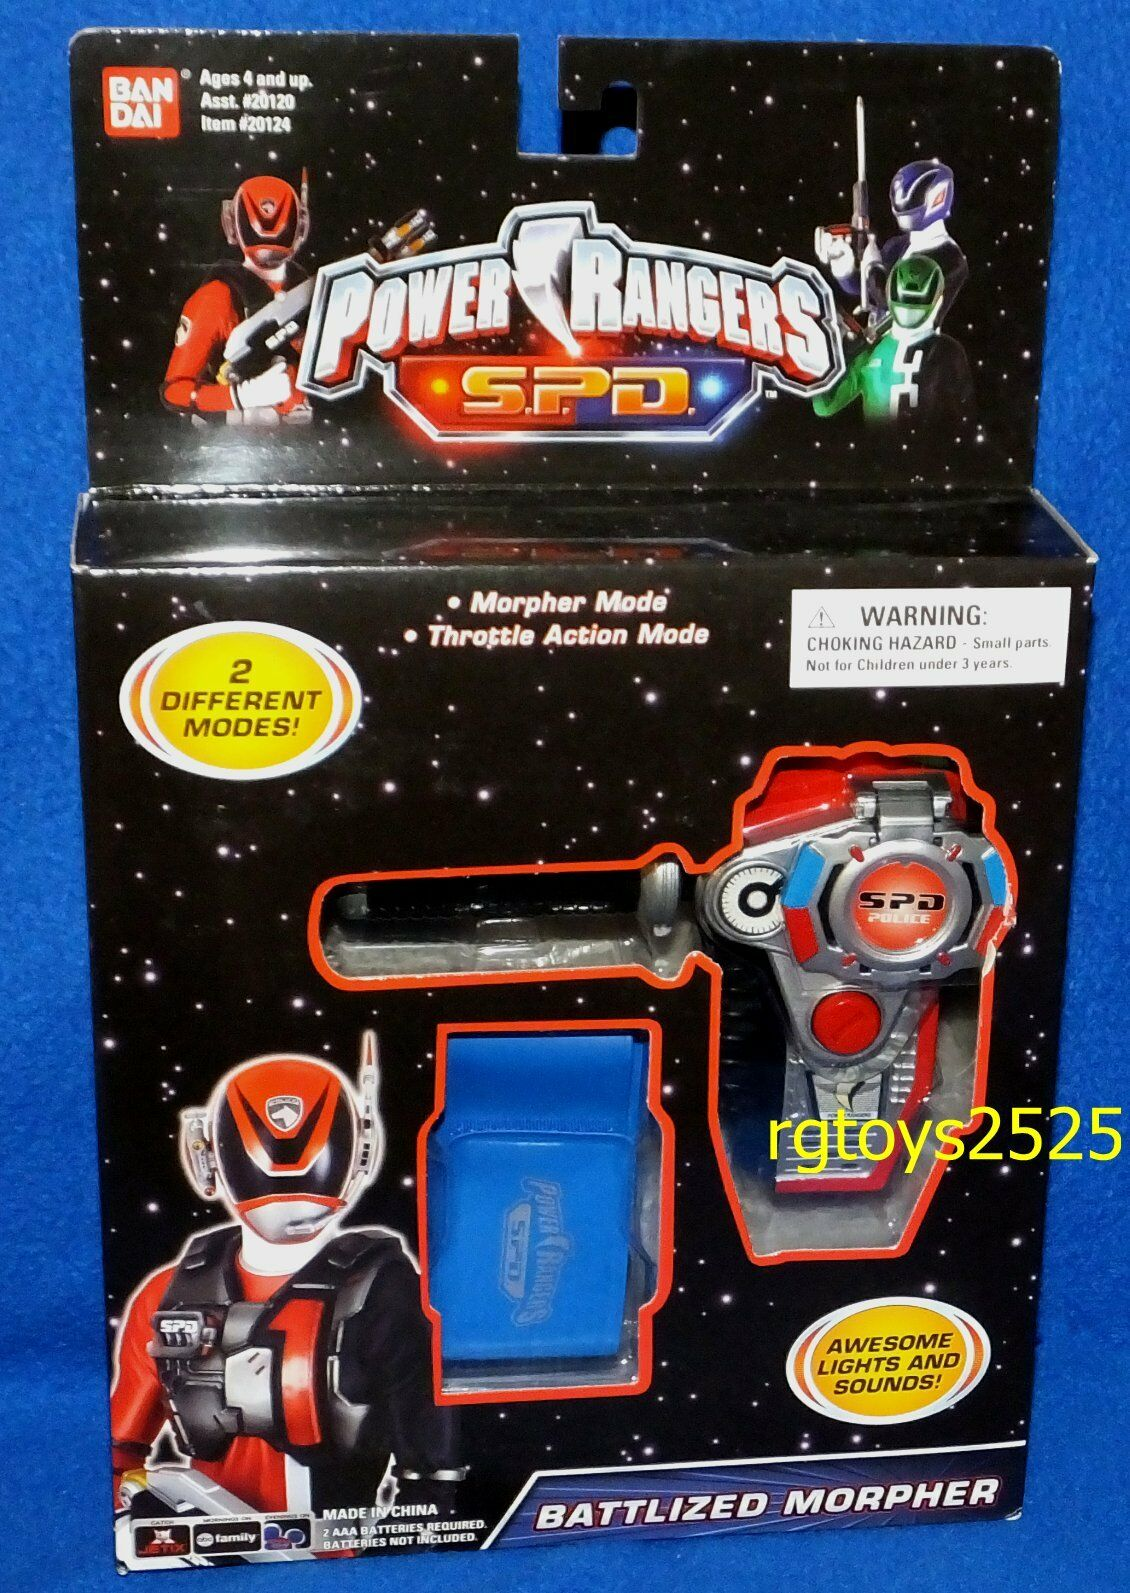 Power Ranger SPD RED Battlized Morpher New Electronic Light & Sound Factory Seal